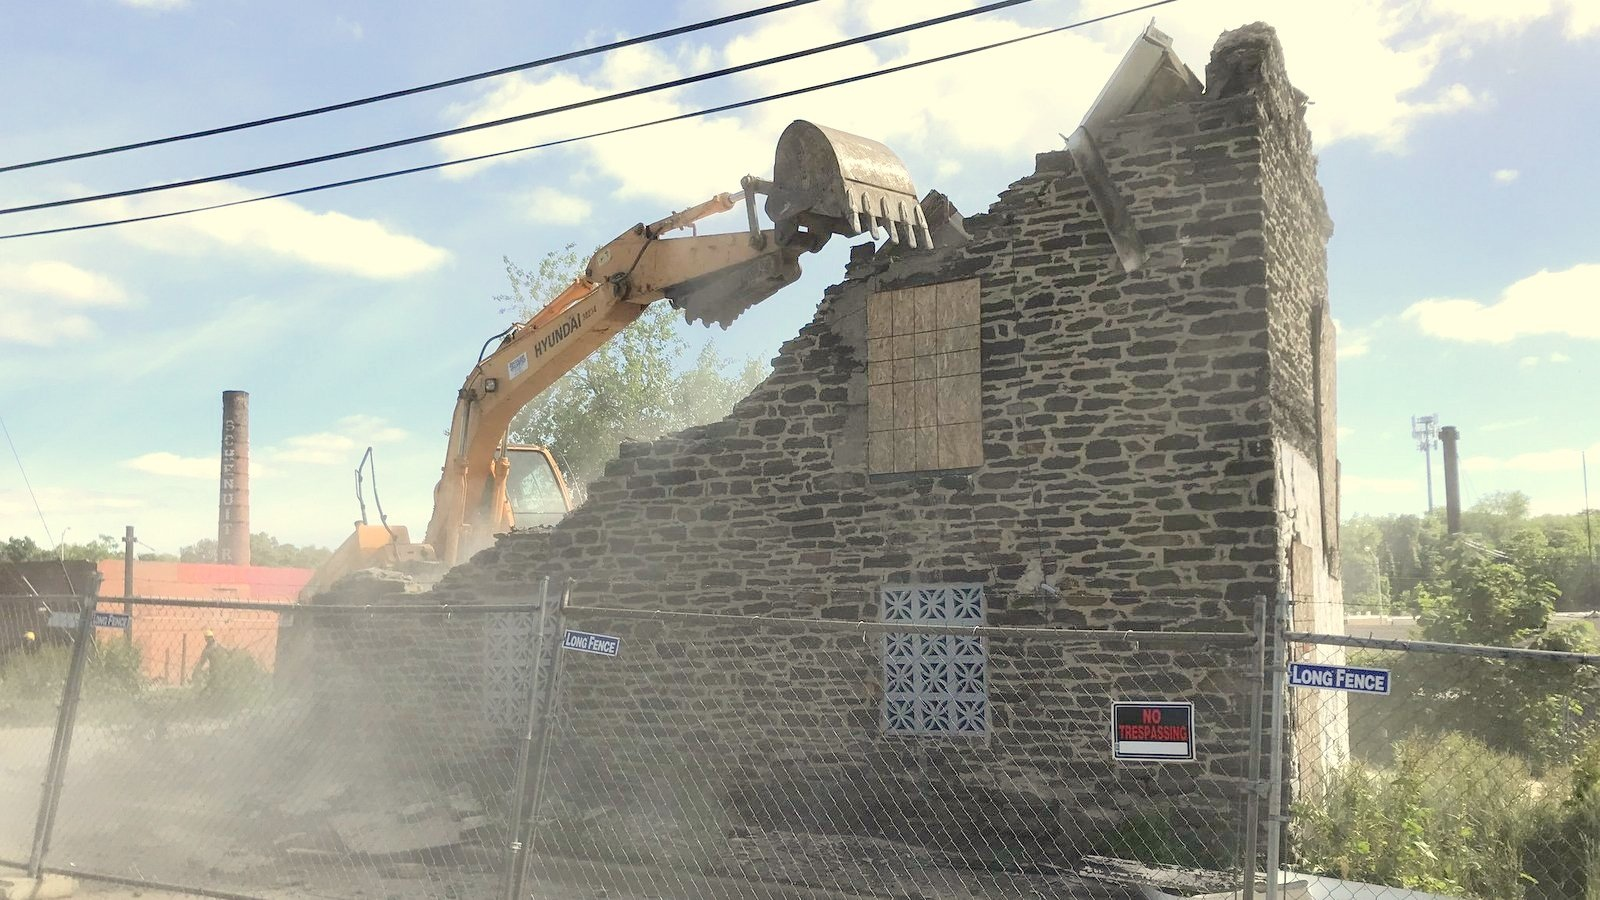 Last May's demolition of this another another historic houses by developer Katherine Jennings spurred community efforts to designate Woodberry a historic district. (sevensixfive)